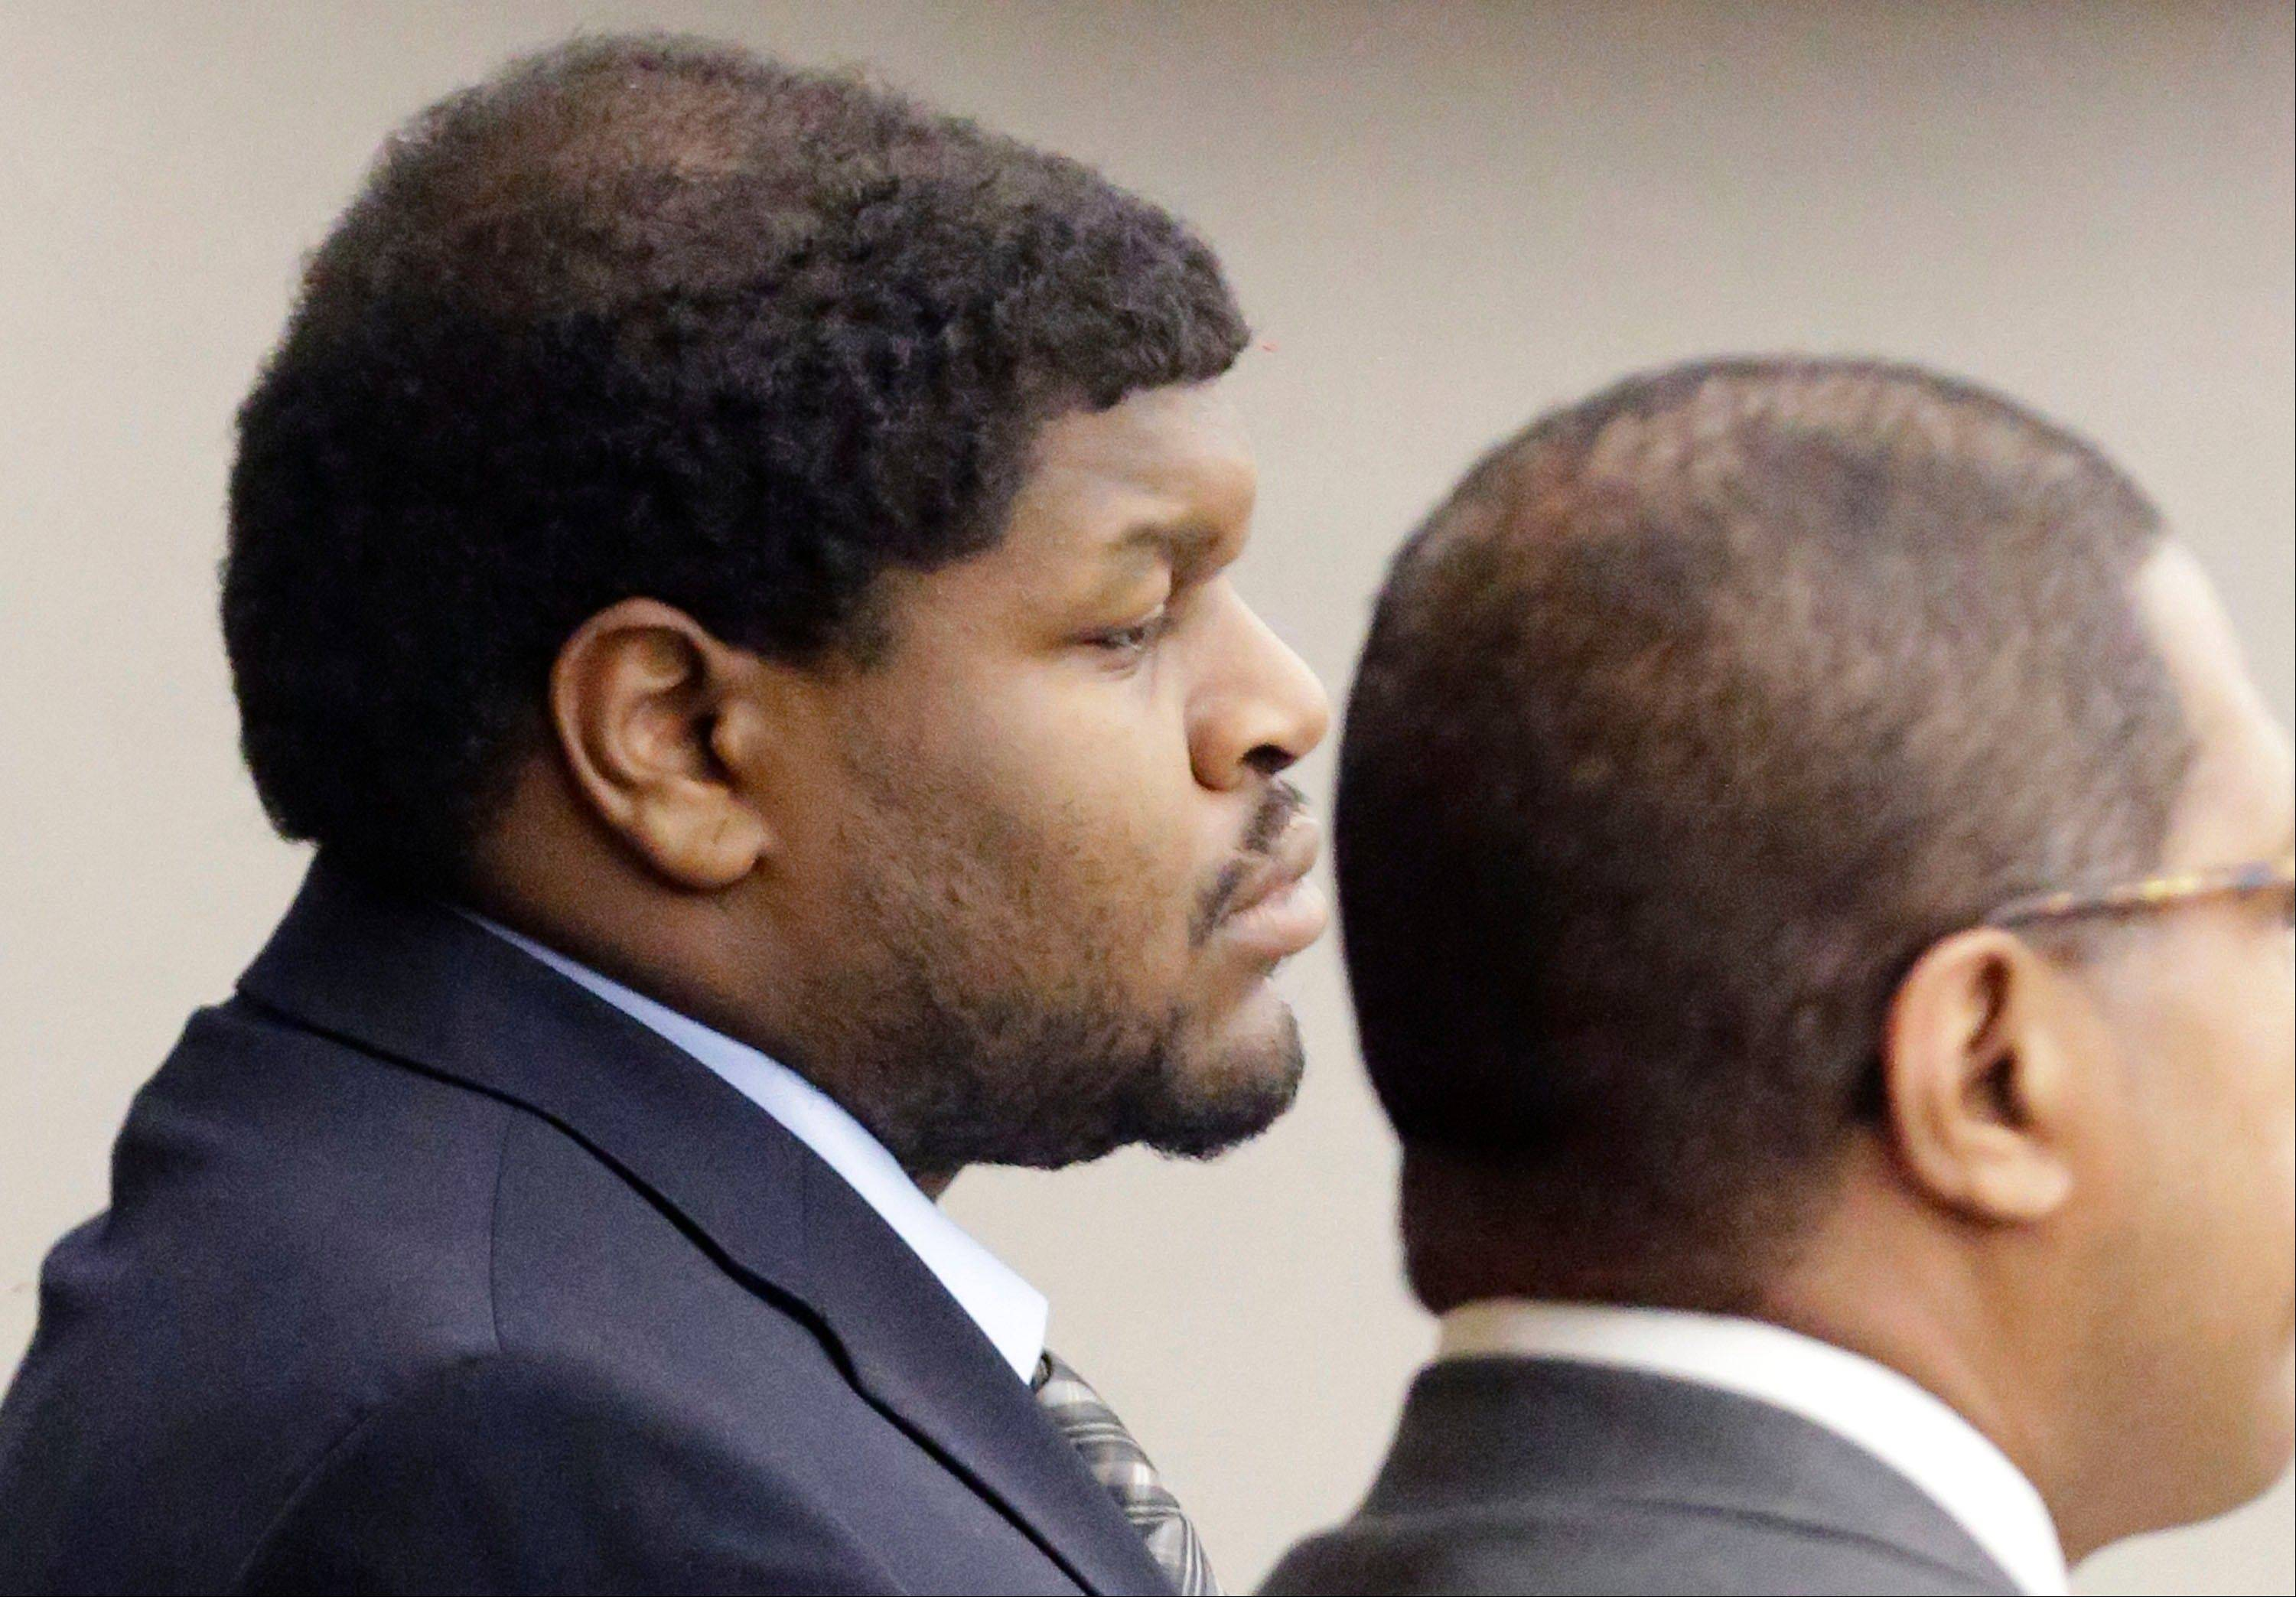 Josh Brent, left, former Dallas Cowboys NFL football player, listens with one of his lawyers Kevin Brooks while the punishment for his intoxication manslaughter conviction is read in court Friday, Jan. 24, 2014, in Dallas. Brent was sentenced to 180 days in jail and 10 years of probation for a drunken car crash that killed his friend and teammate, Jerry Brown.